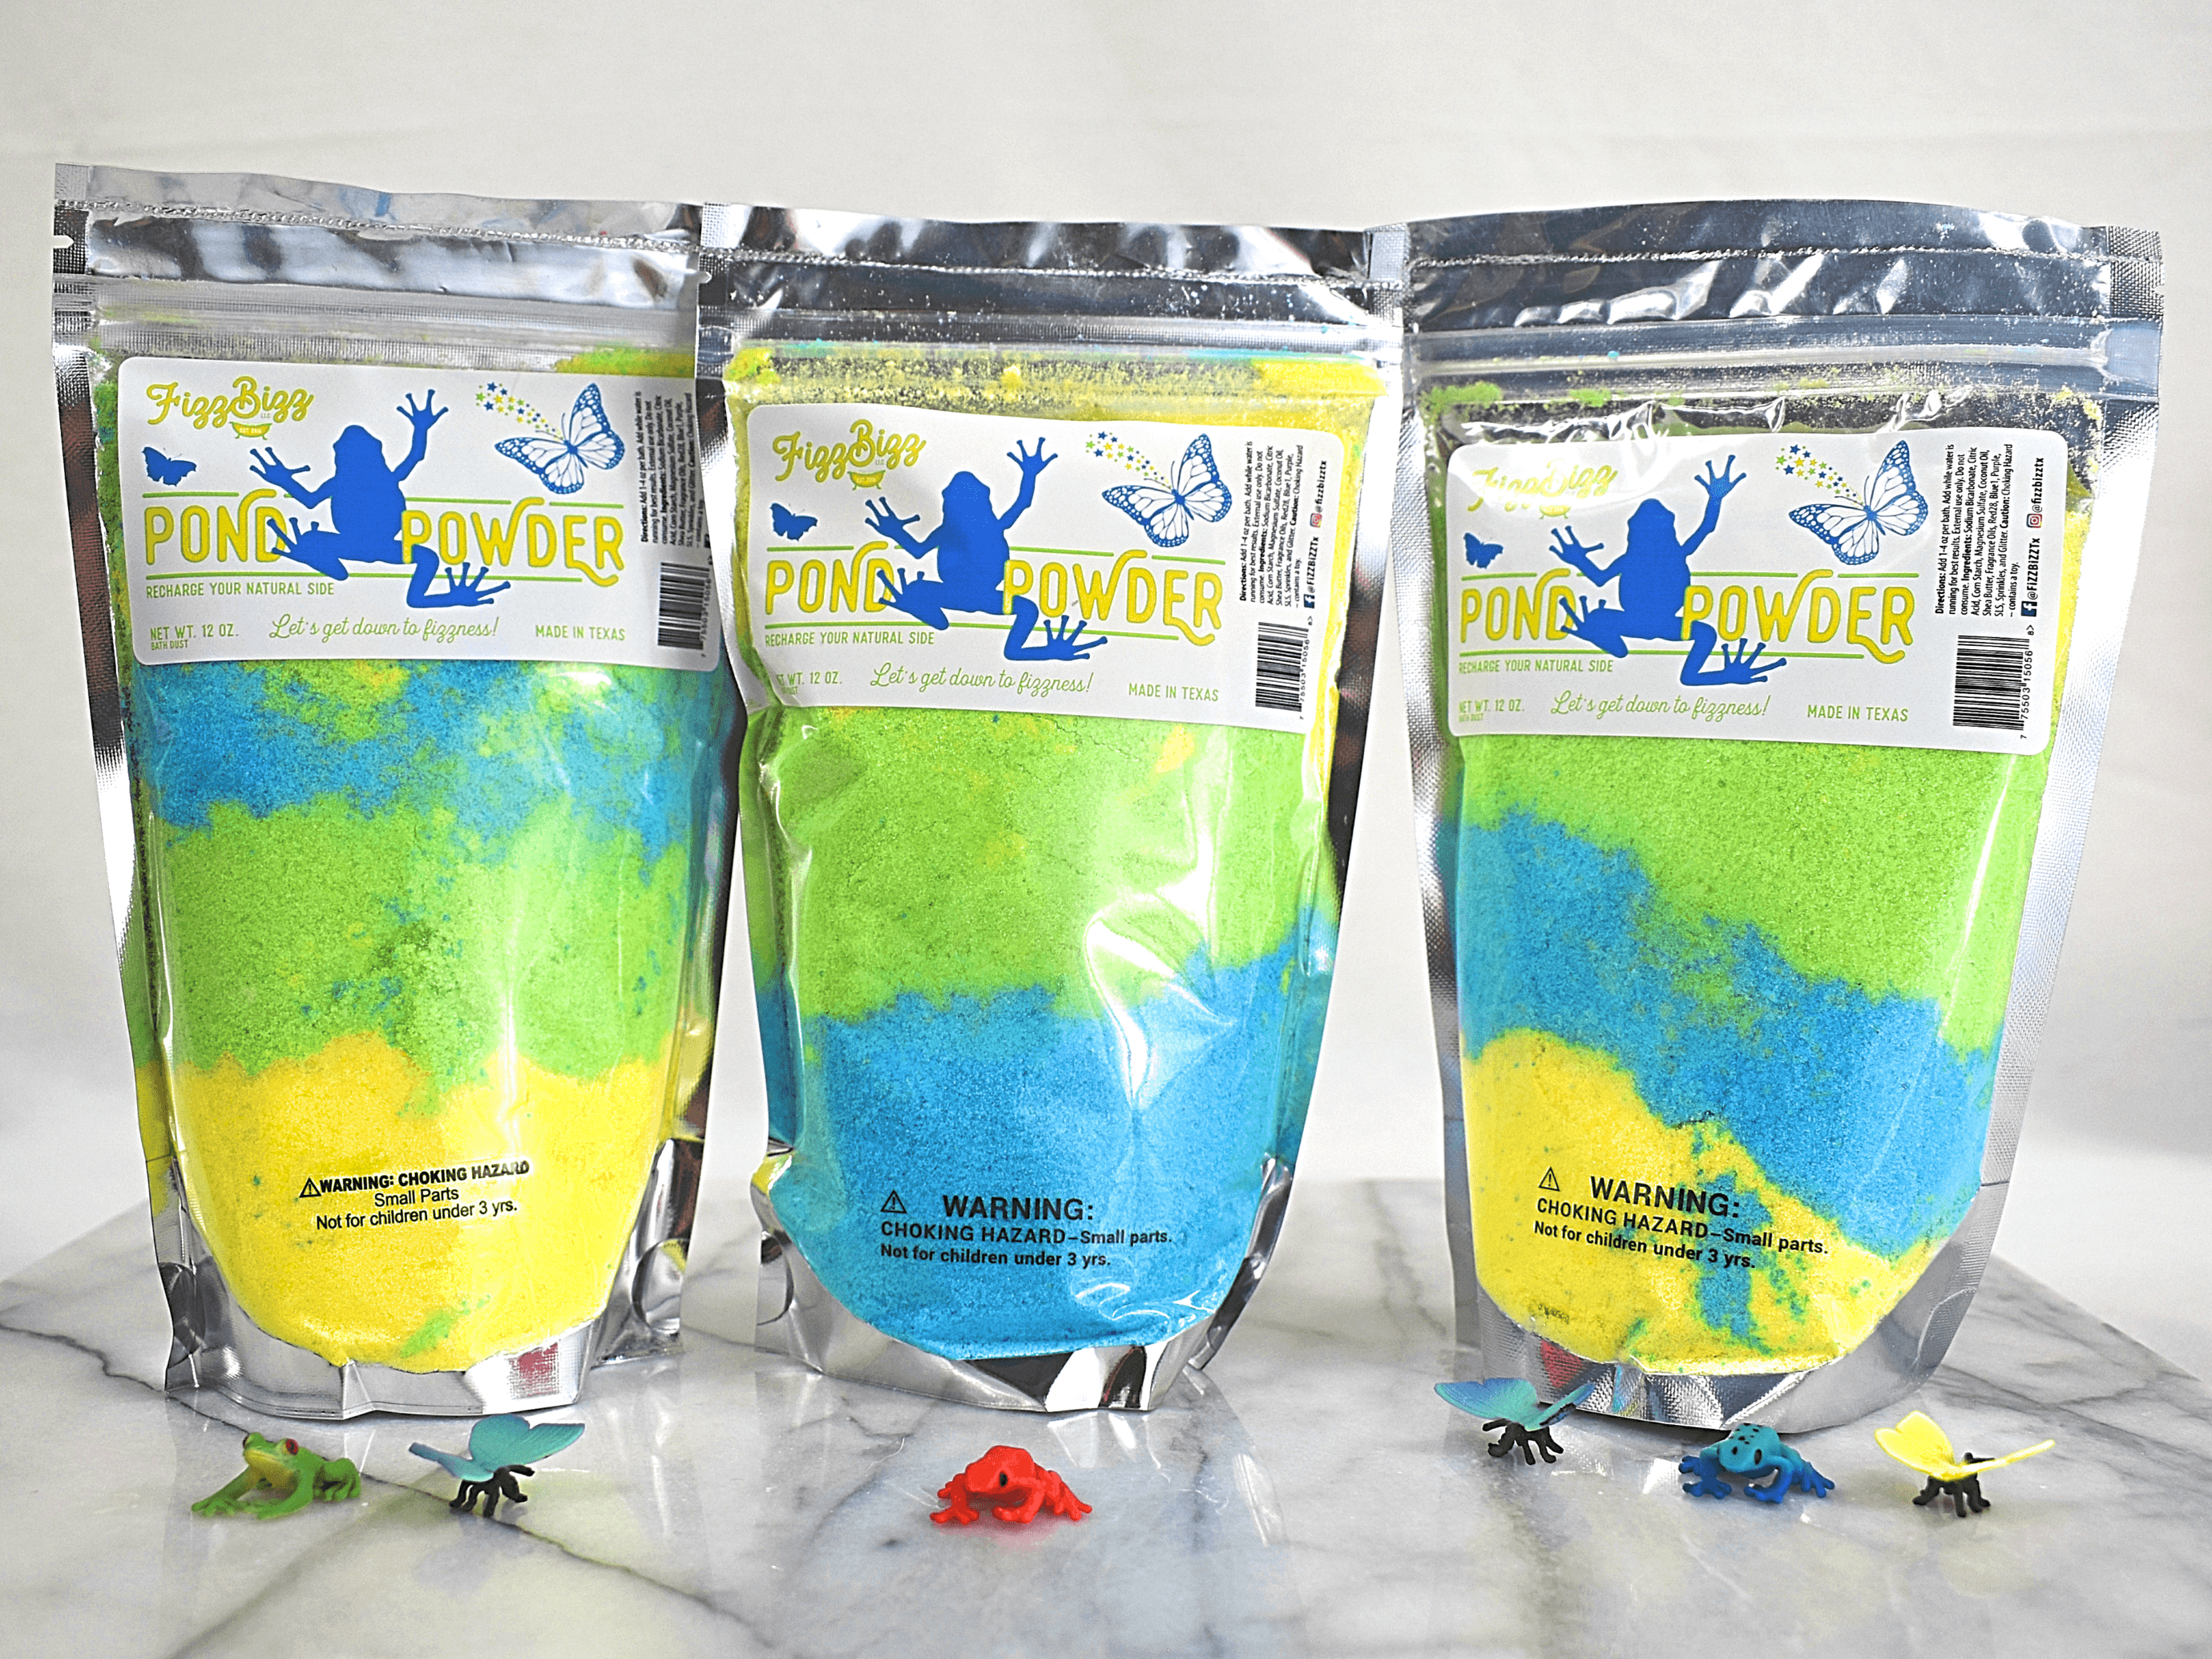 Fizz Bizz LLC - Pond Powder - Kids Bath Salts